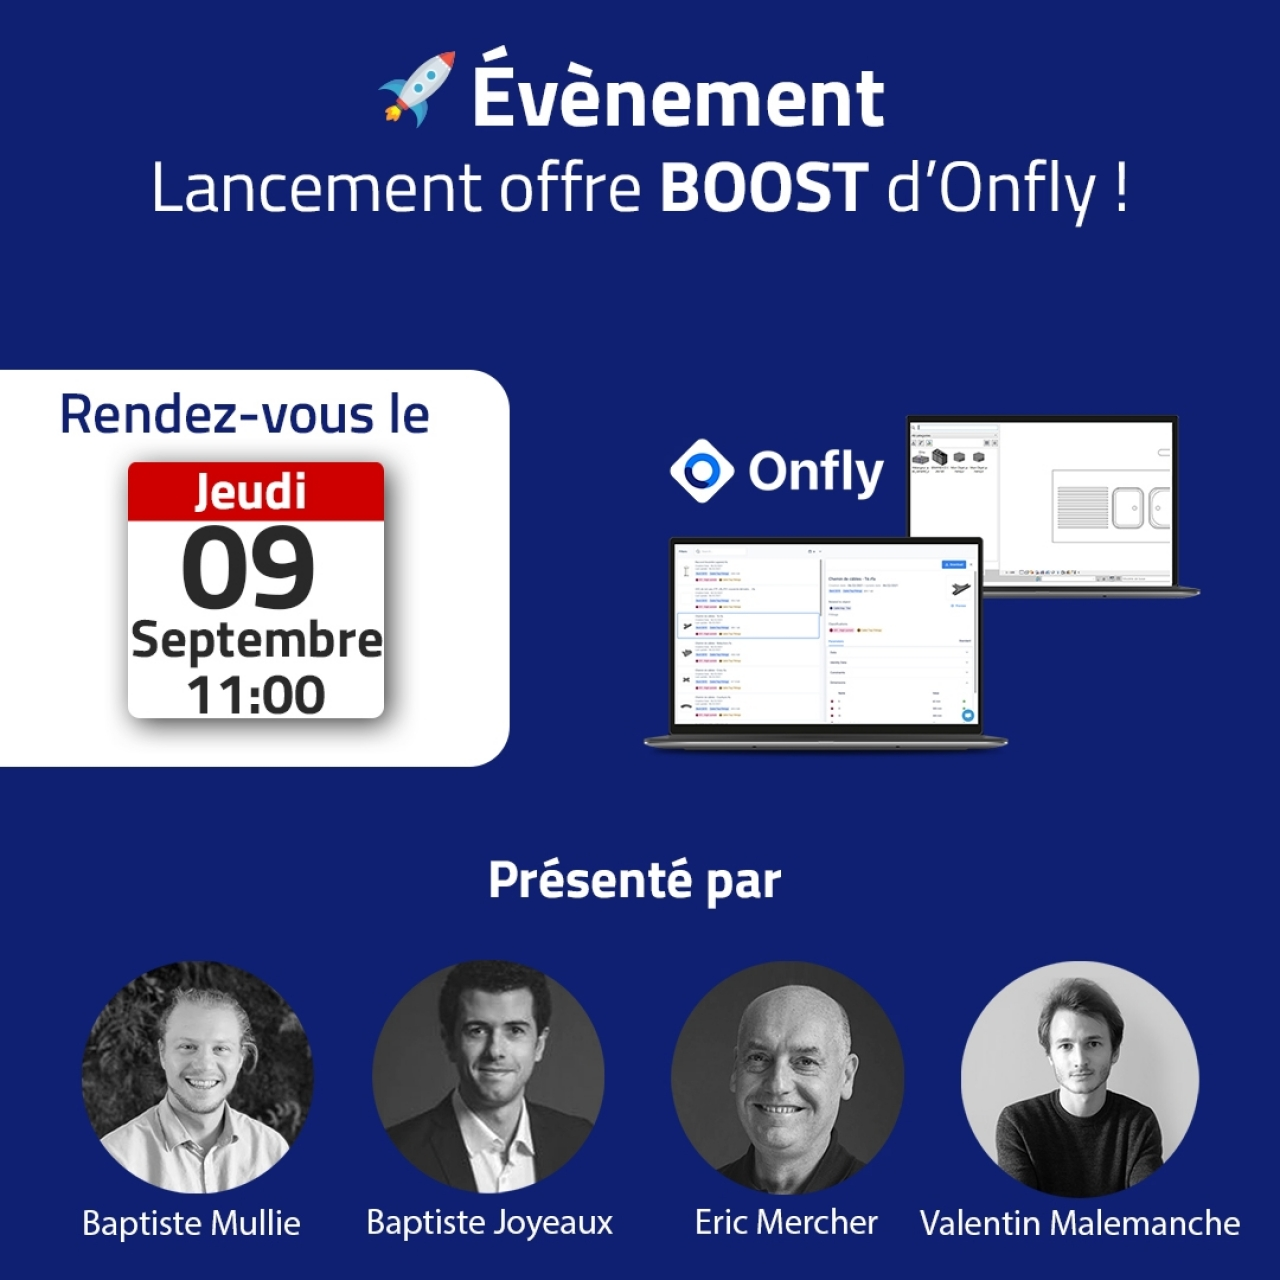 event offre boost.jpg